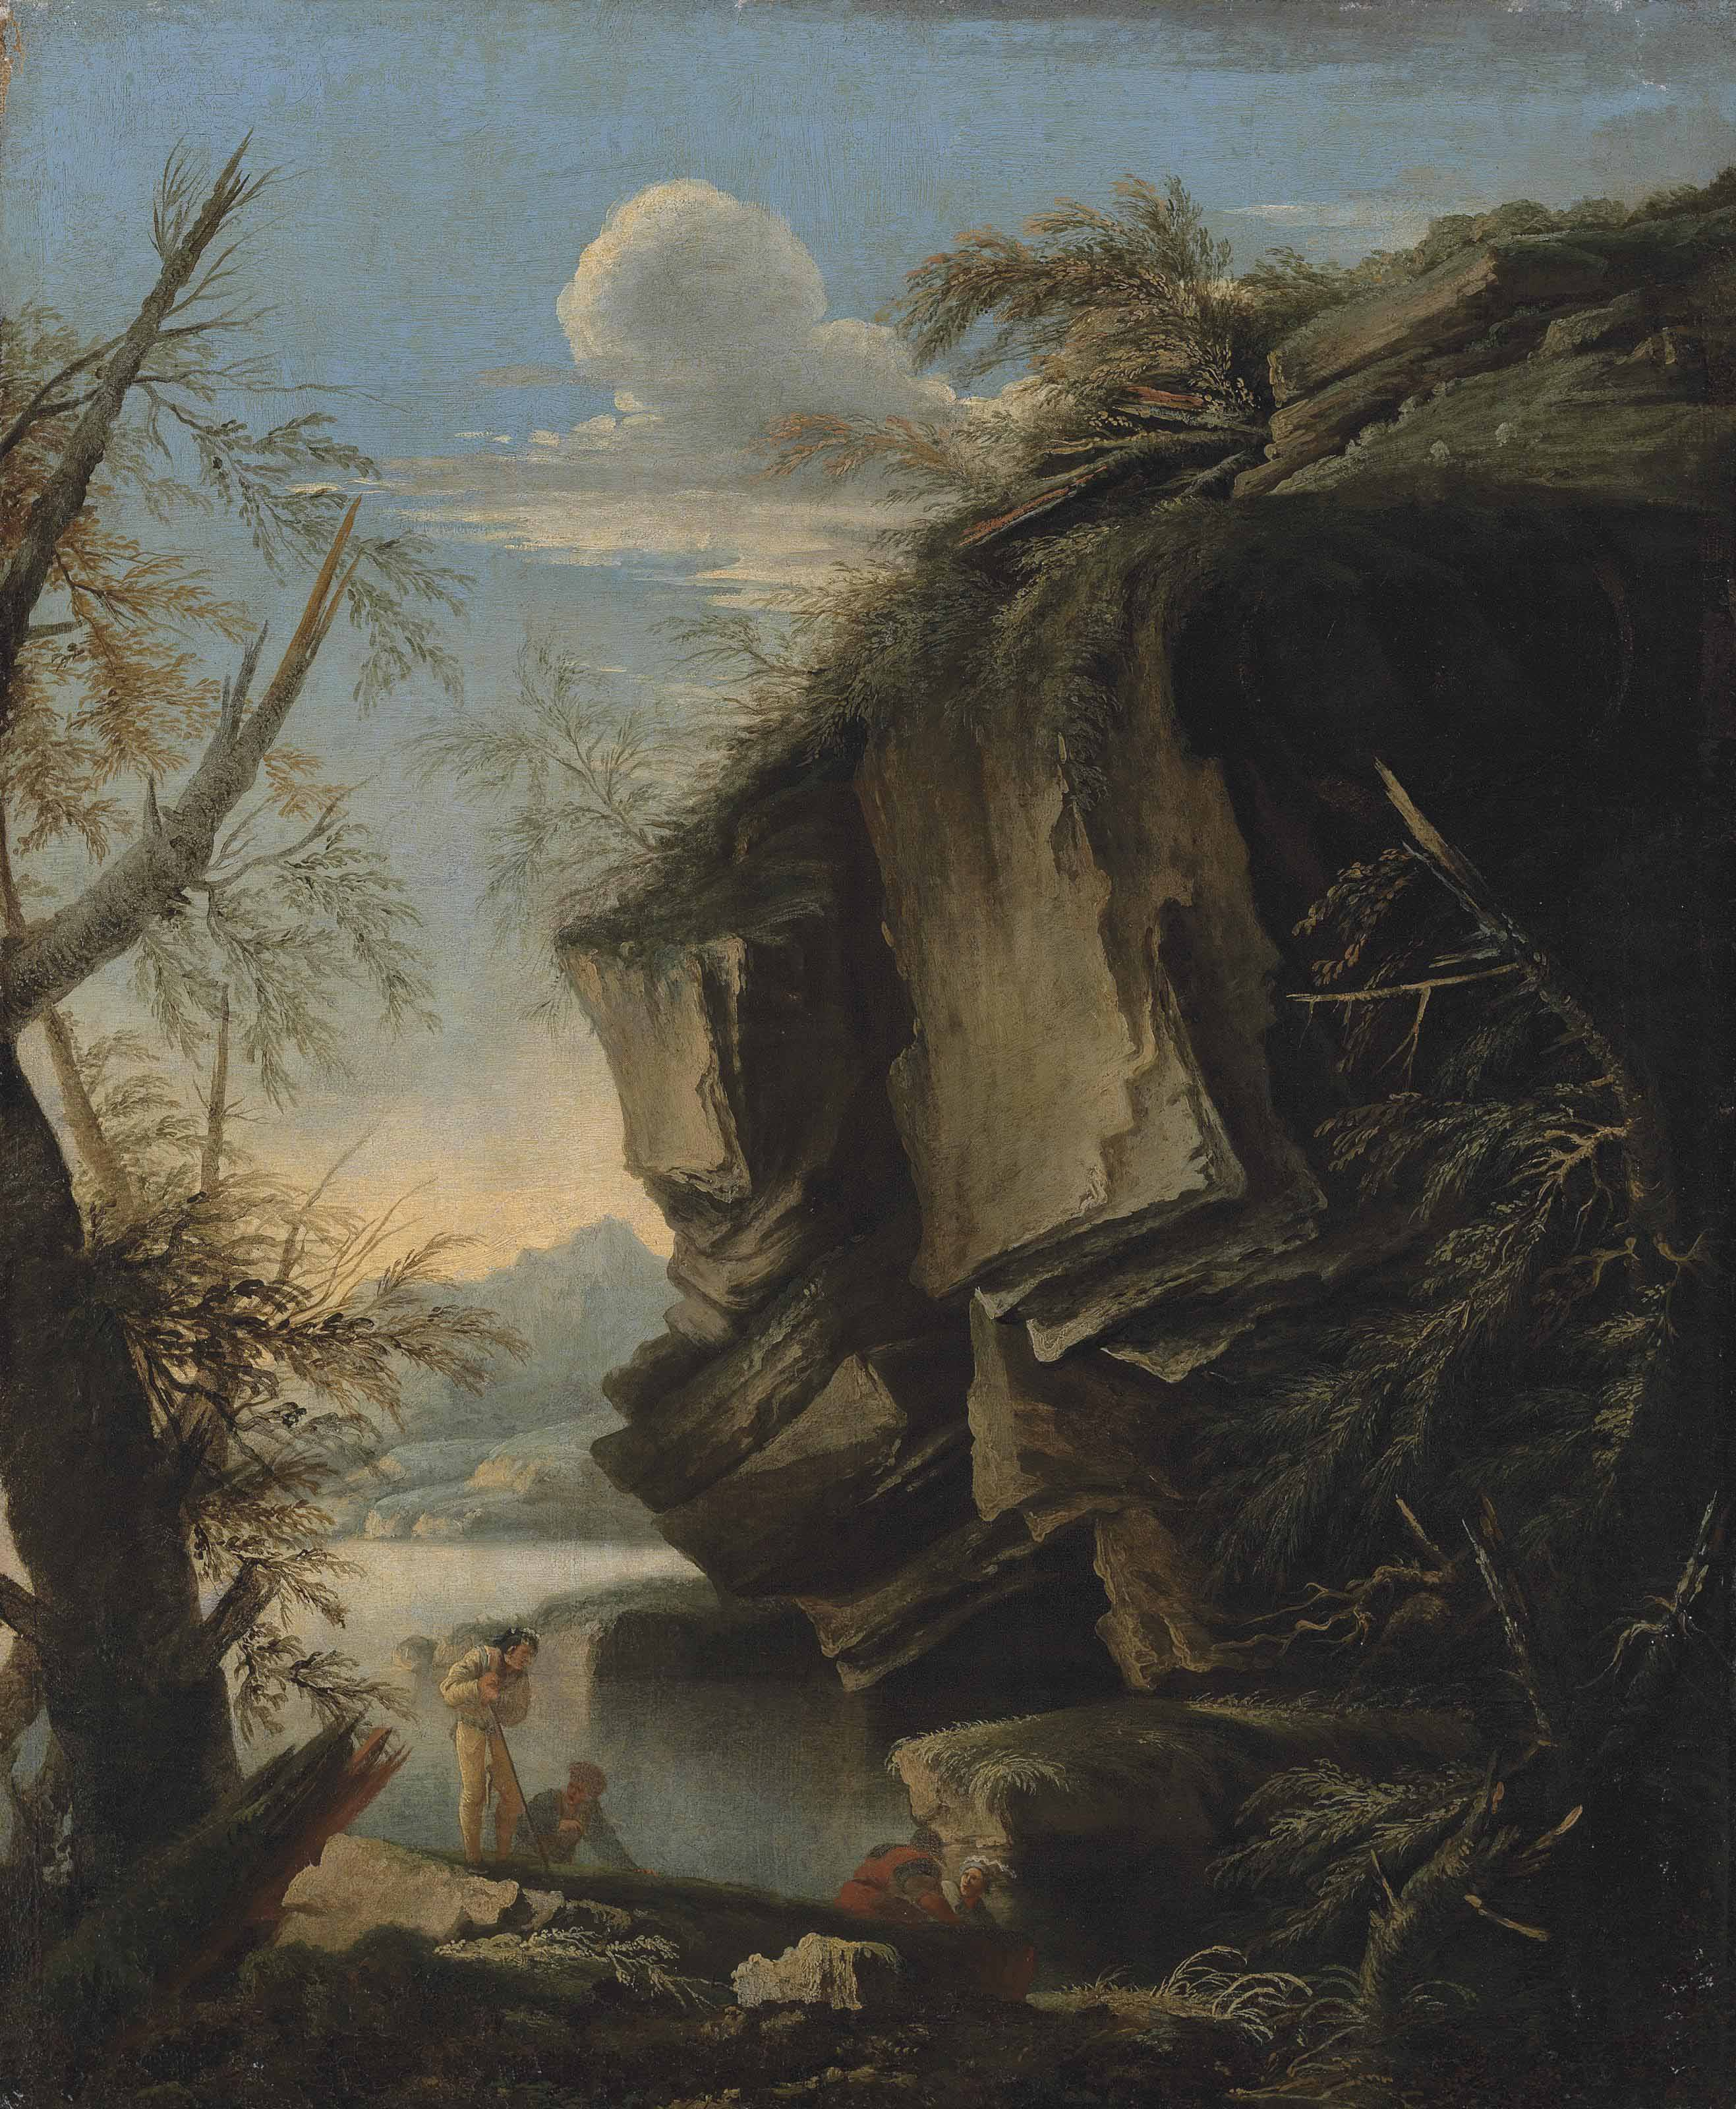 A rocky landscape with figures resting at the edge of a lake